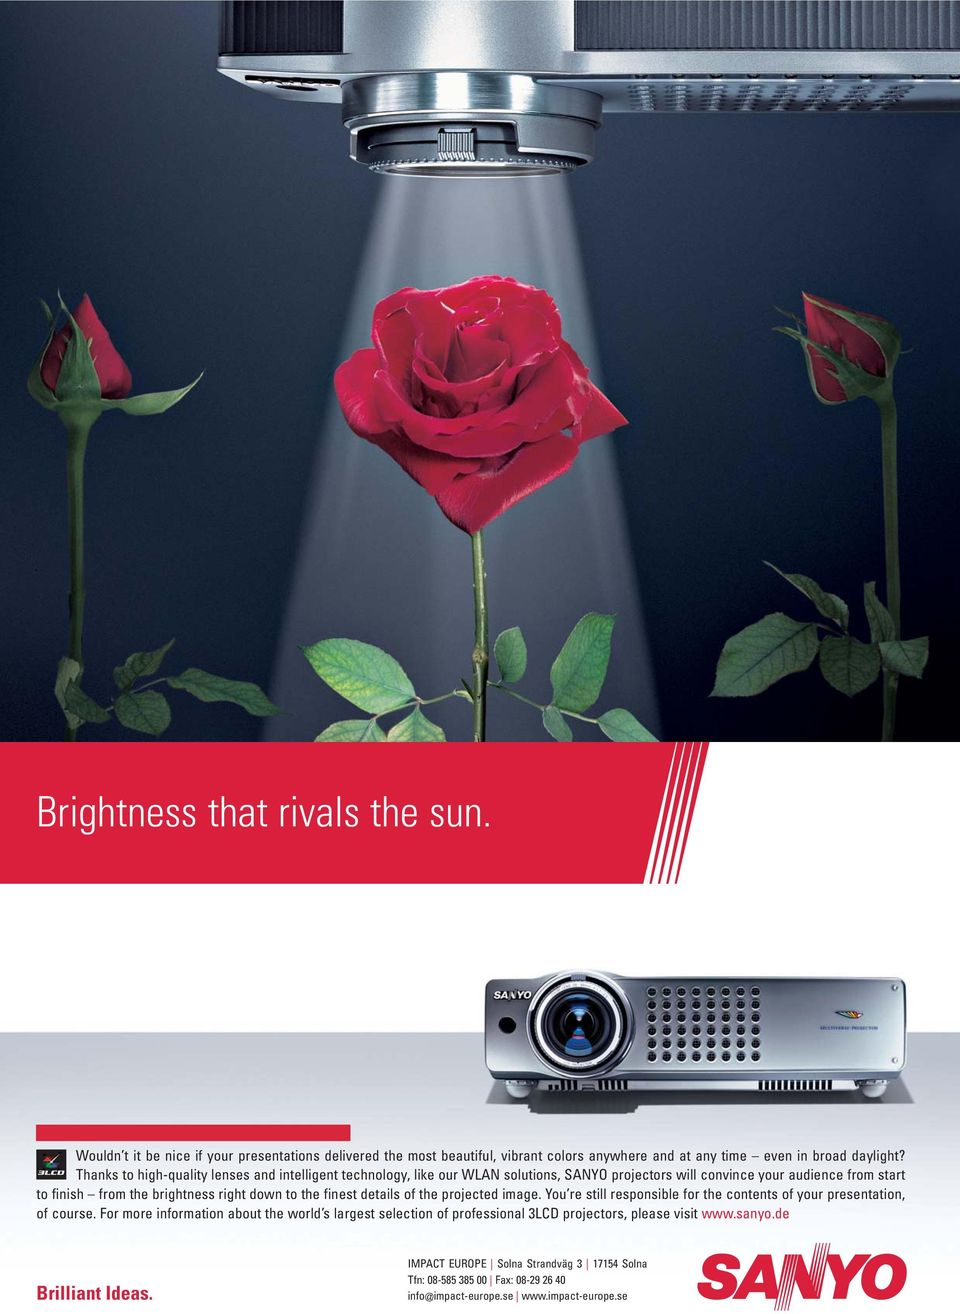 Thanks to high-quality lenses and intelligent technology, like our WLAN solutions, SANYO projectors will convince your audience from start to finish from the brightness right down to the